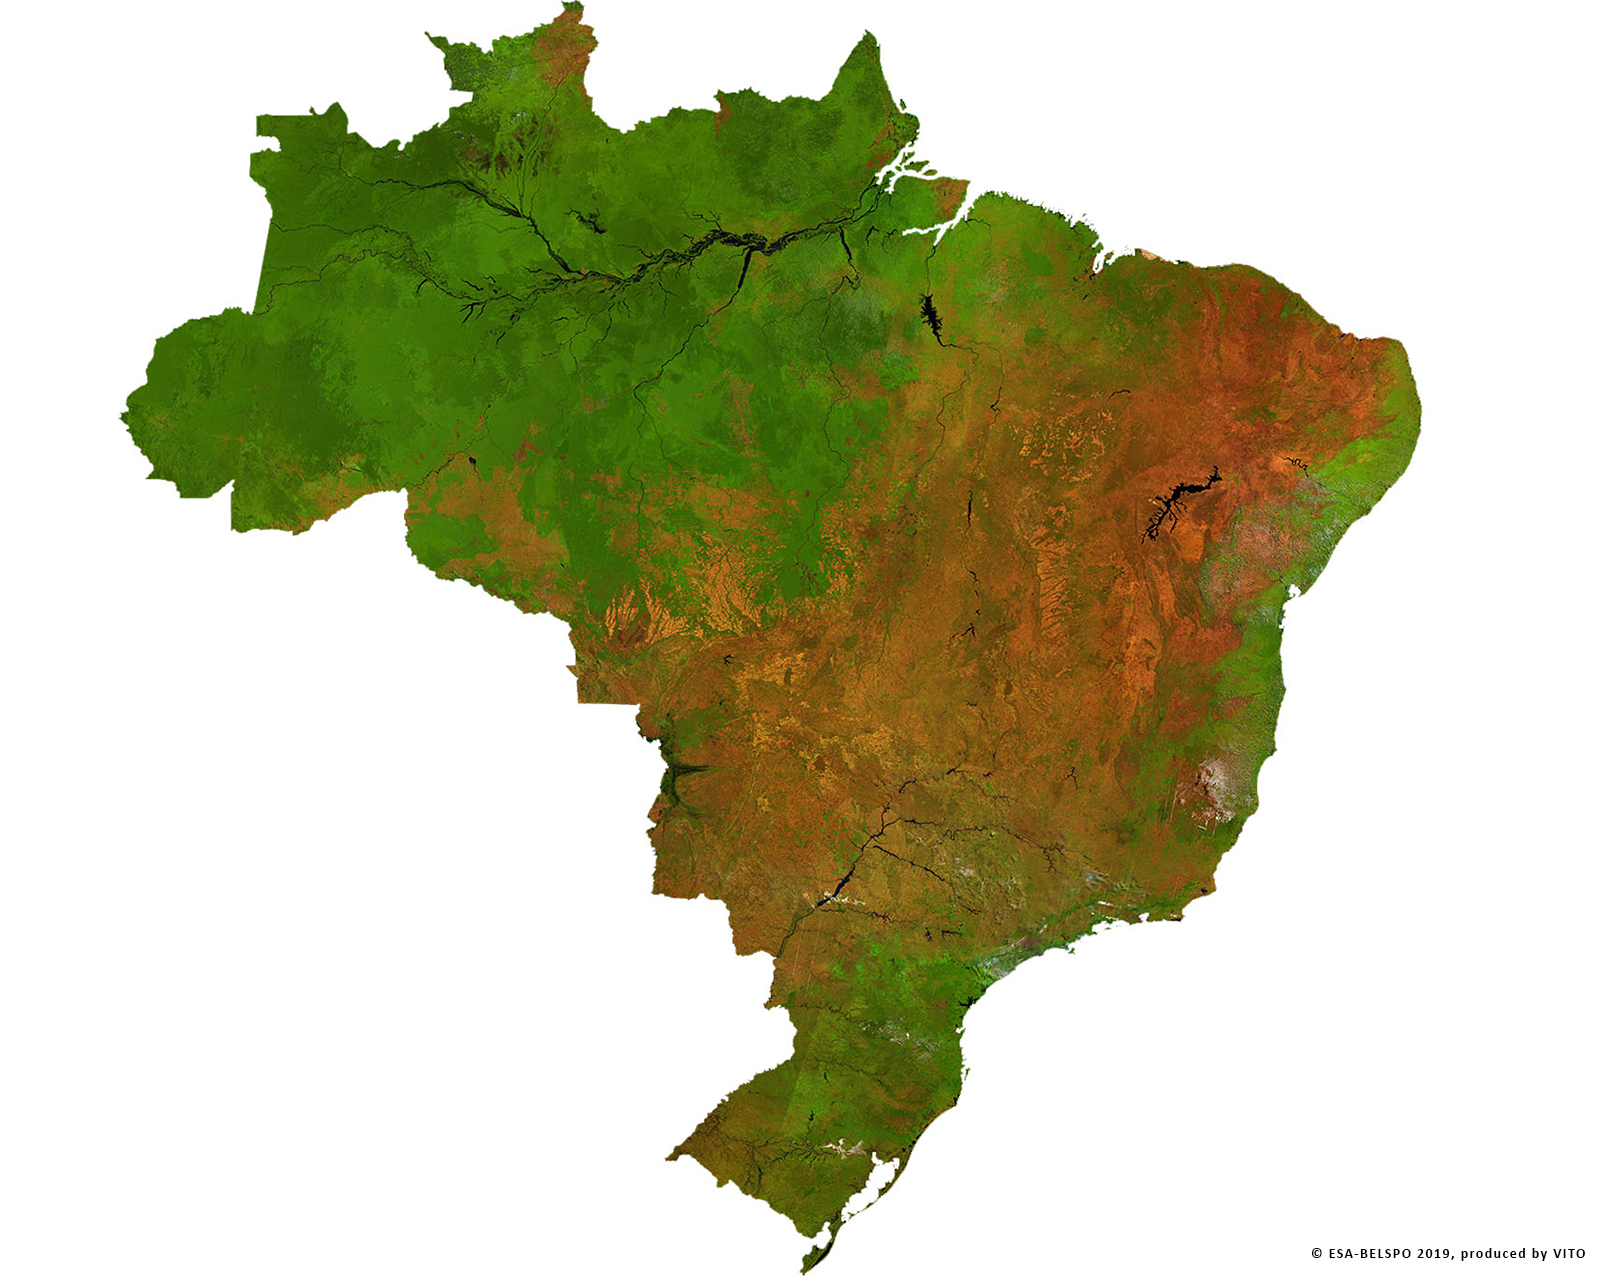 Brazil's Country Overshoot Day